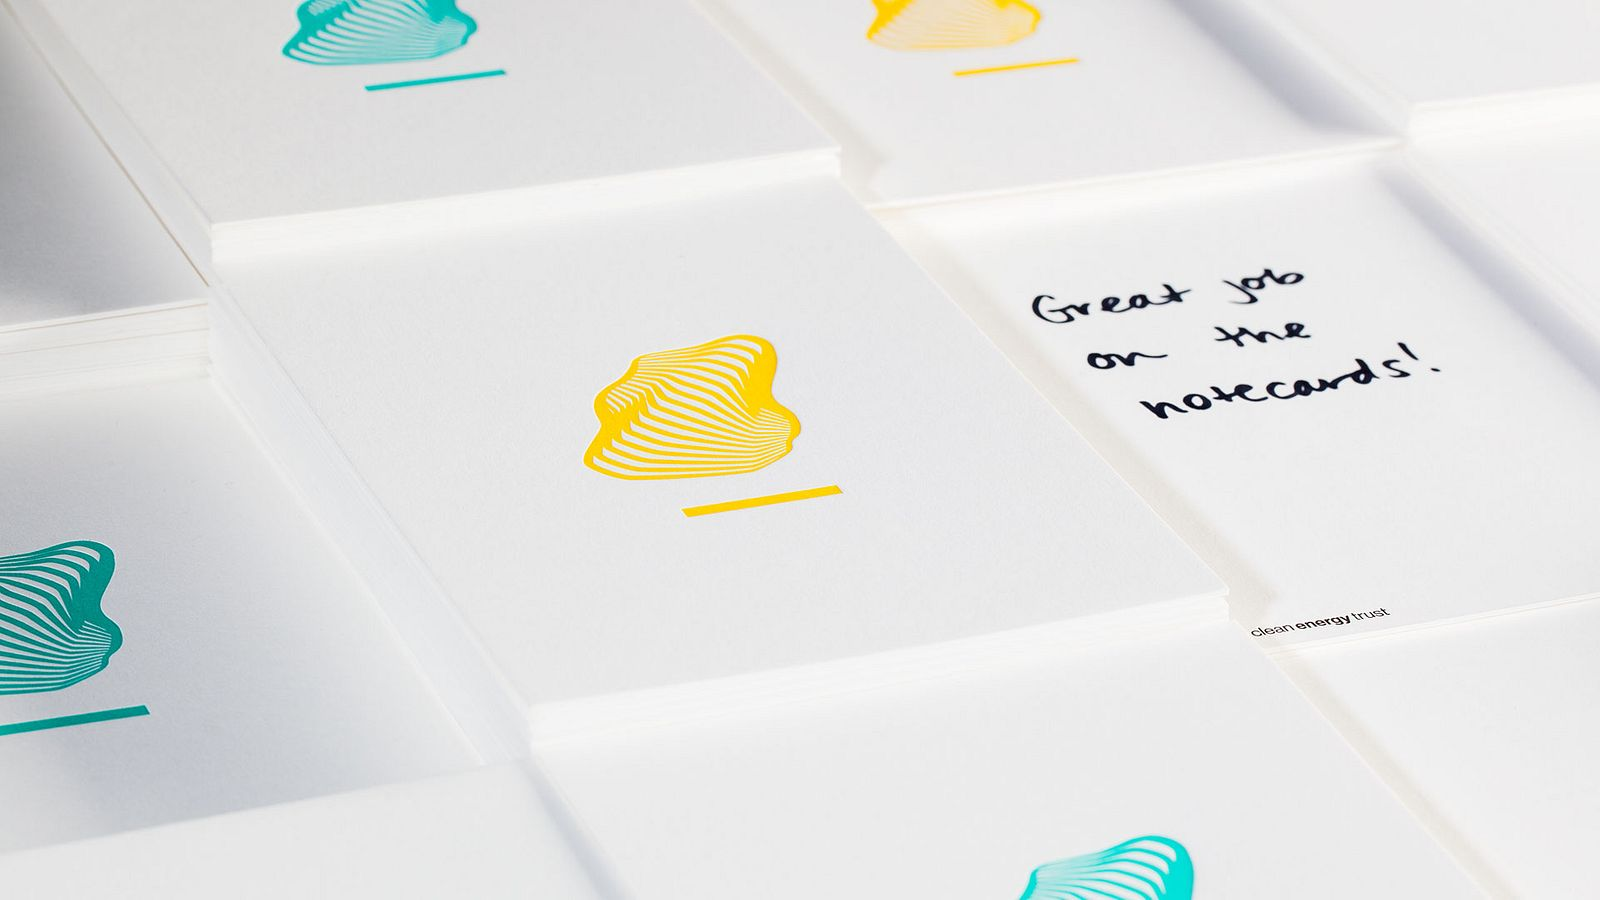 CET thank you cards, designed and produced by Someoddpilot